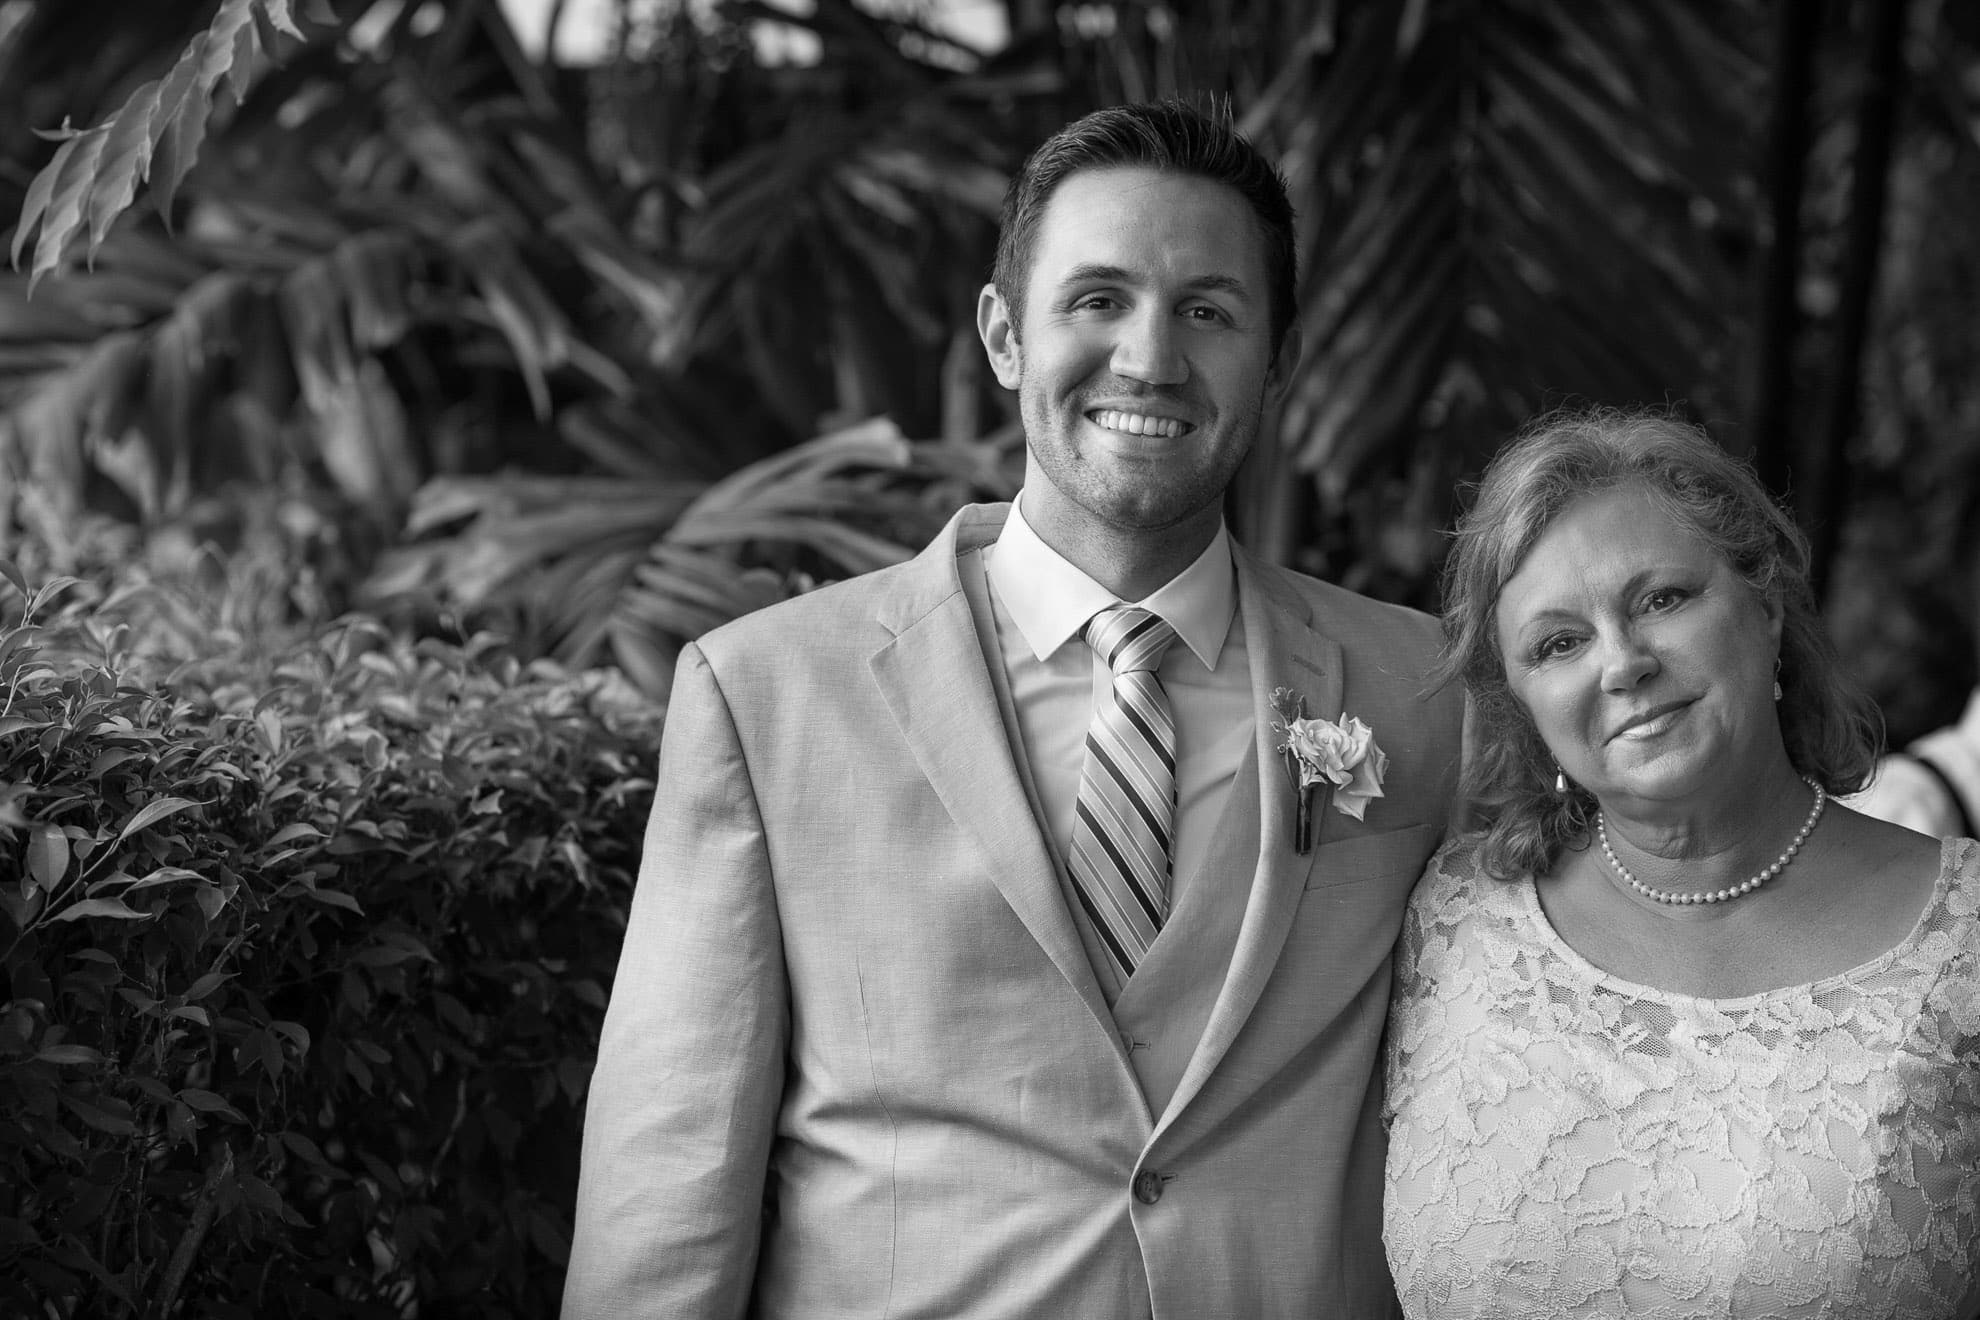 Groom and mother before wedding.